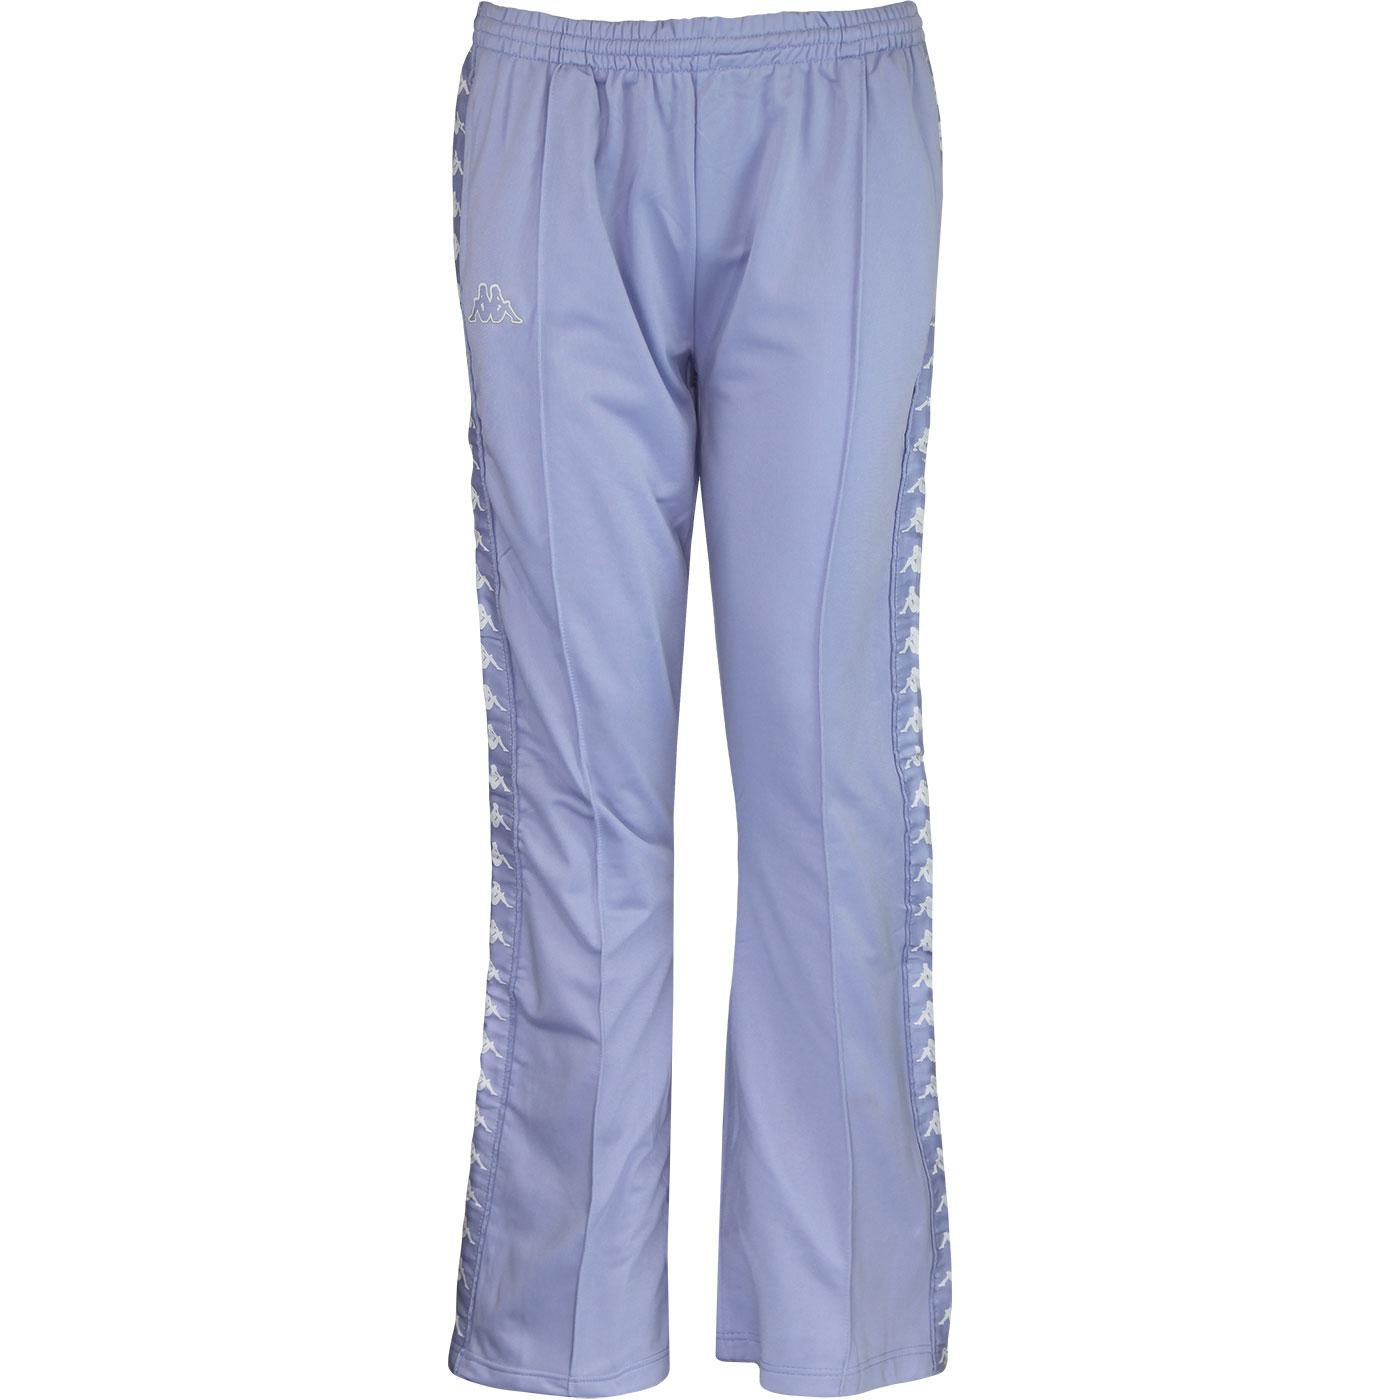 Wastoria Banda KAPPA Womens Snap Track Pants (V)